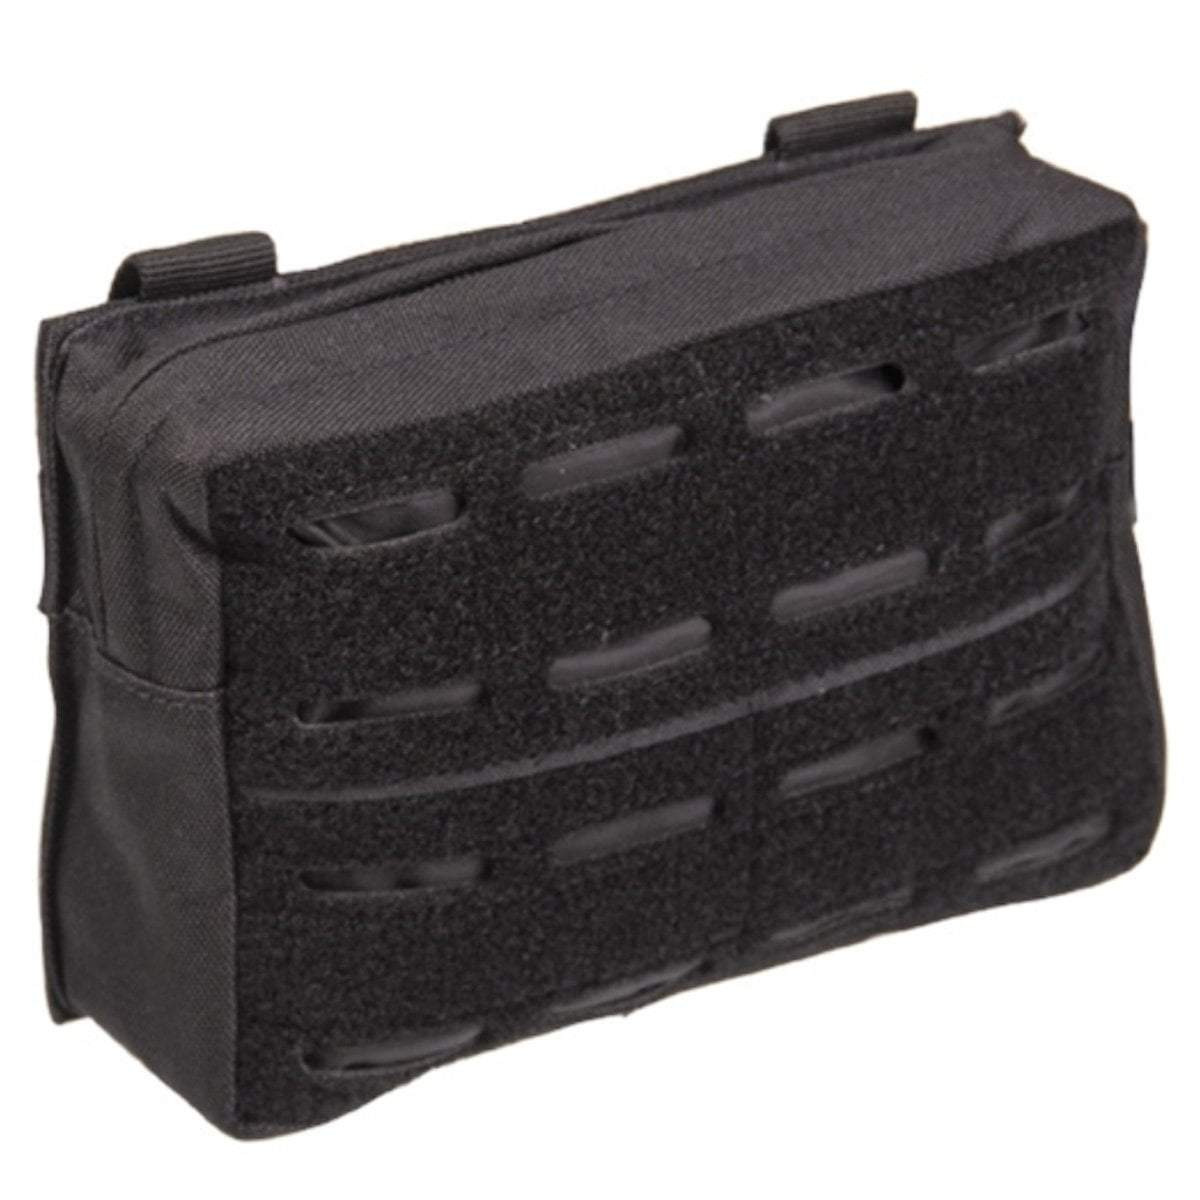 Mil-Tec Small Laser Cut MOLLE Utility Pouch Black | UKMC Pro